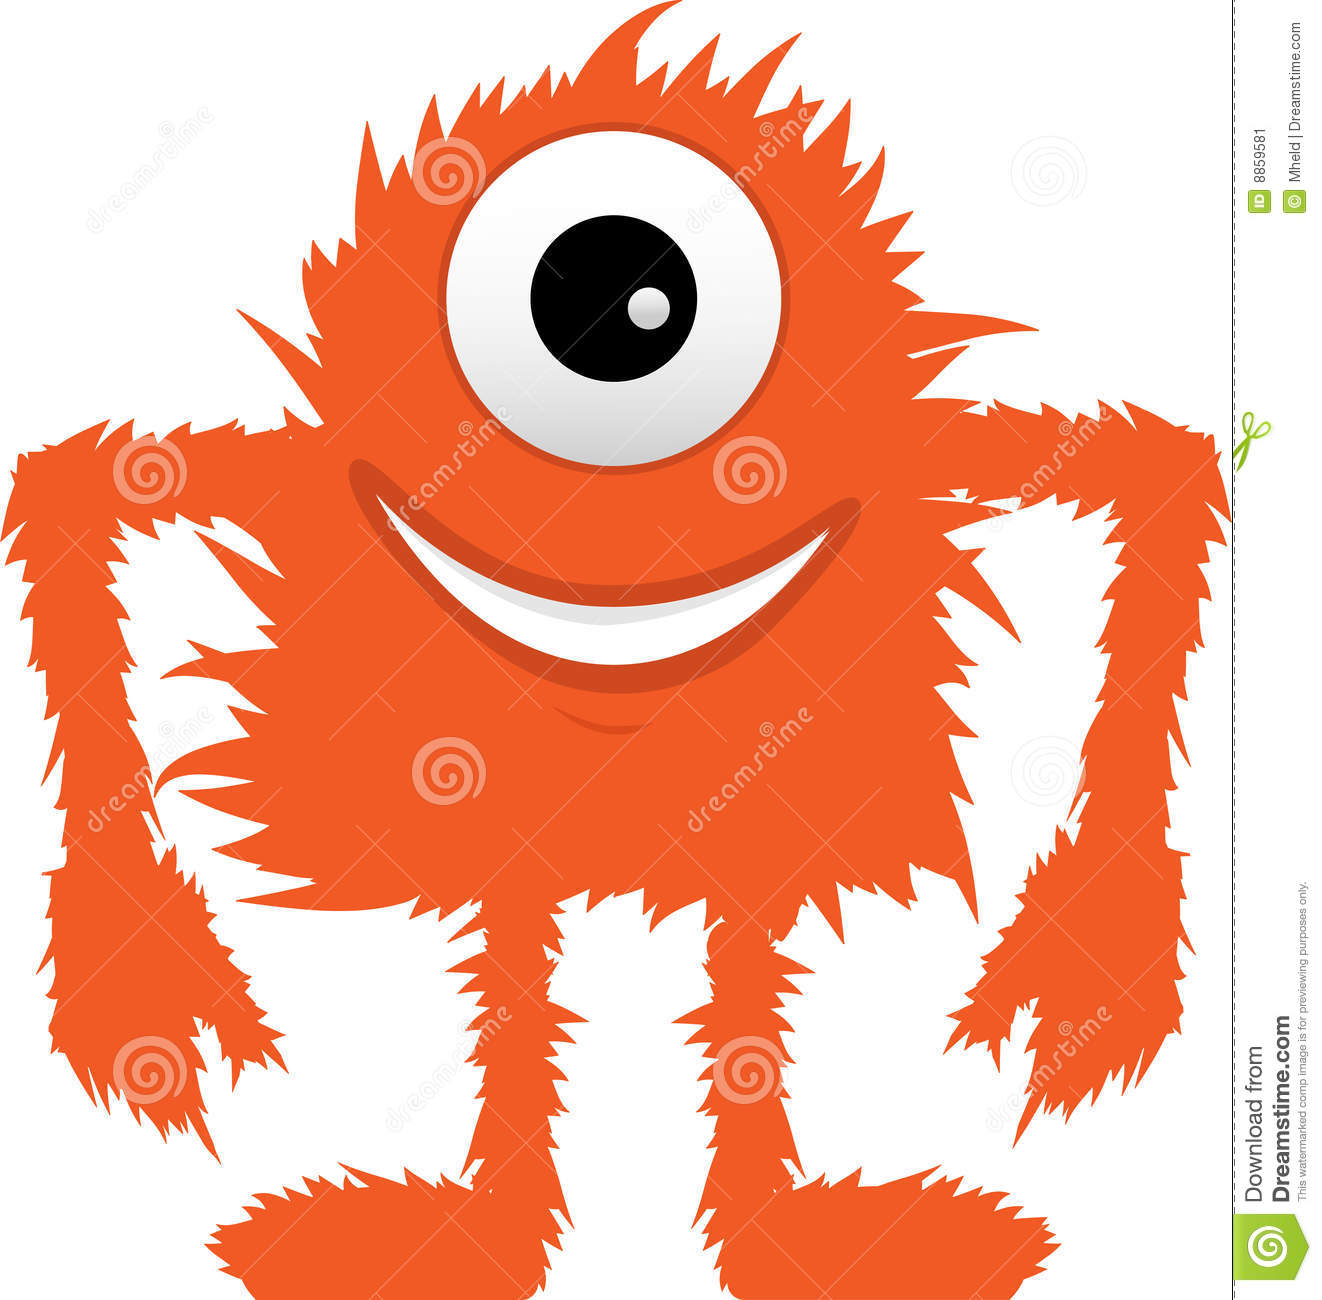 More Similar Stock Images Of Furry Fuzzy Orange One Eyed Monster.